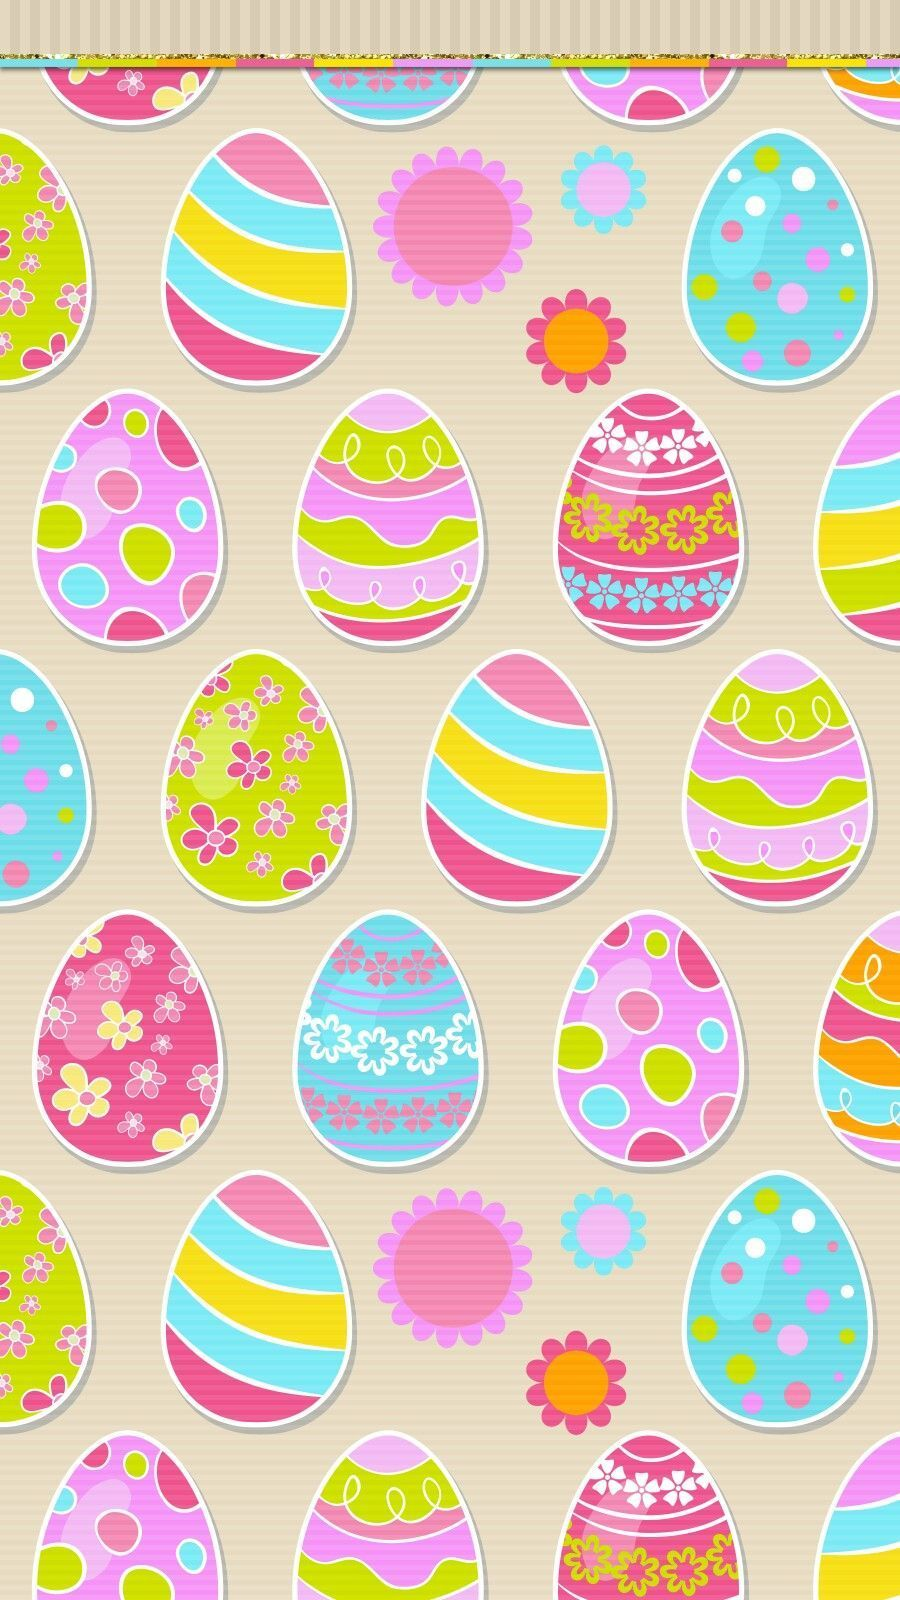 Wallpaper Iphone Easter Wallpapers Iphone 2 Easter Wallpaper Happy Easter Wallpaper Happy Planner Printable Stickers